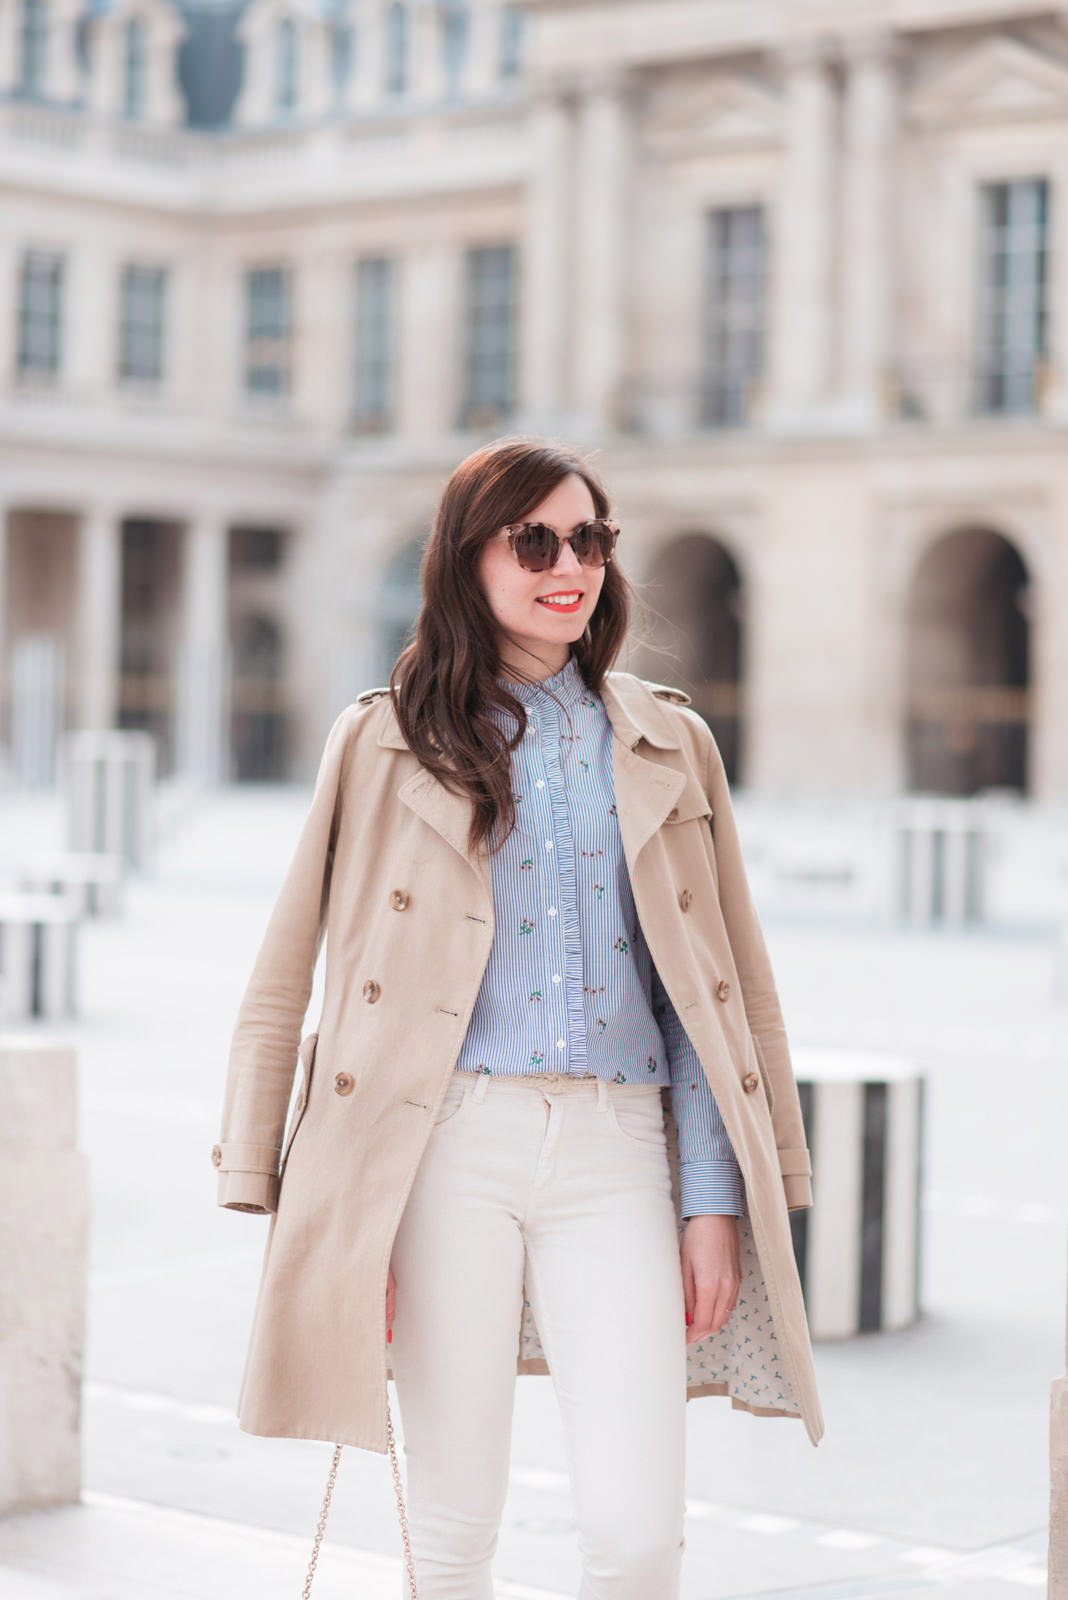 Blog-mode-And-The-City-Looks-Printemps-Pantalon-Blanc-5 copie